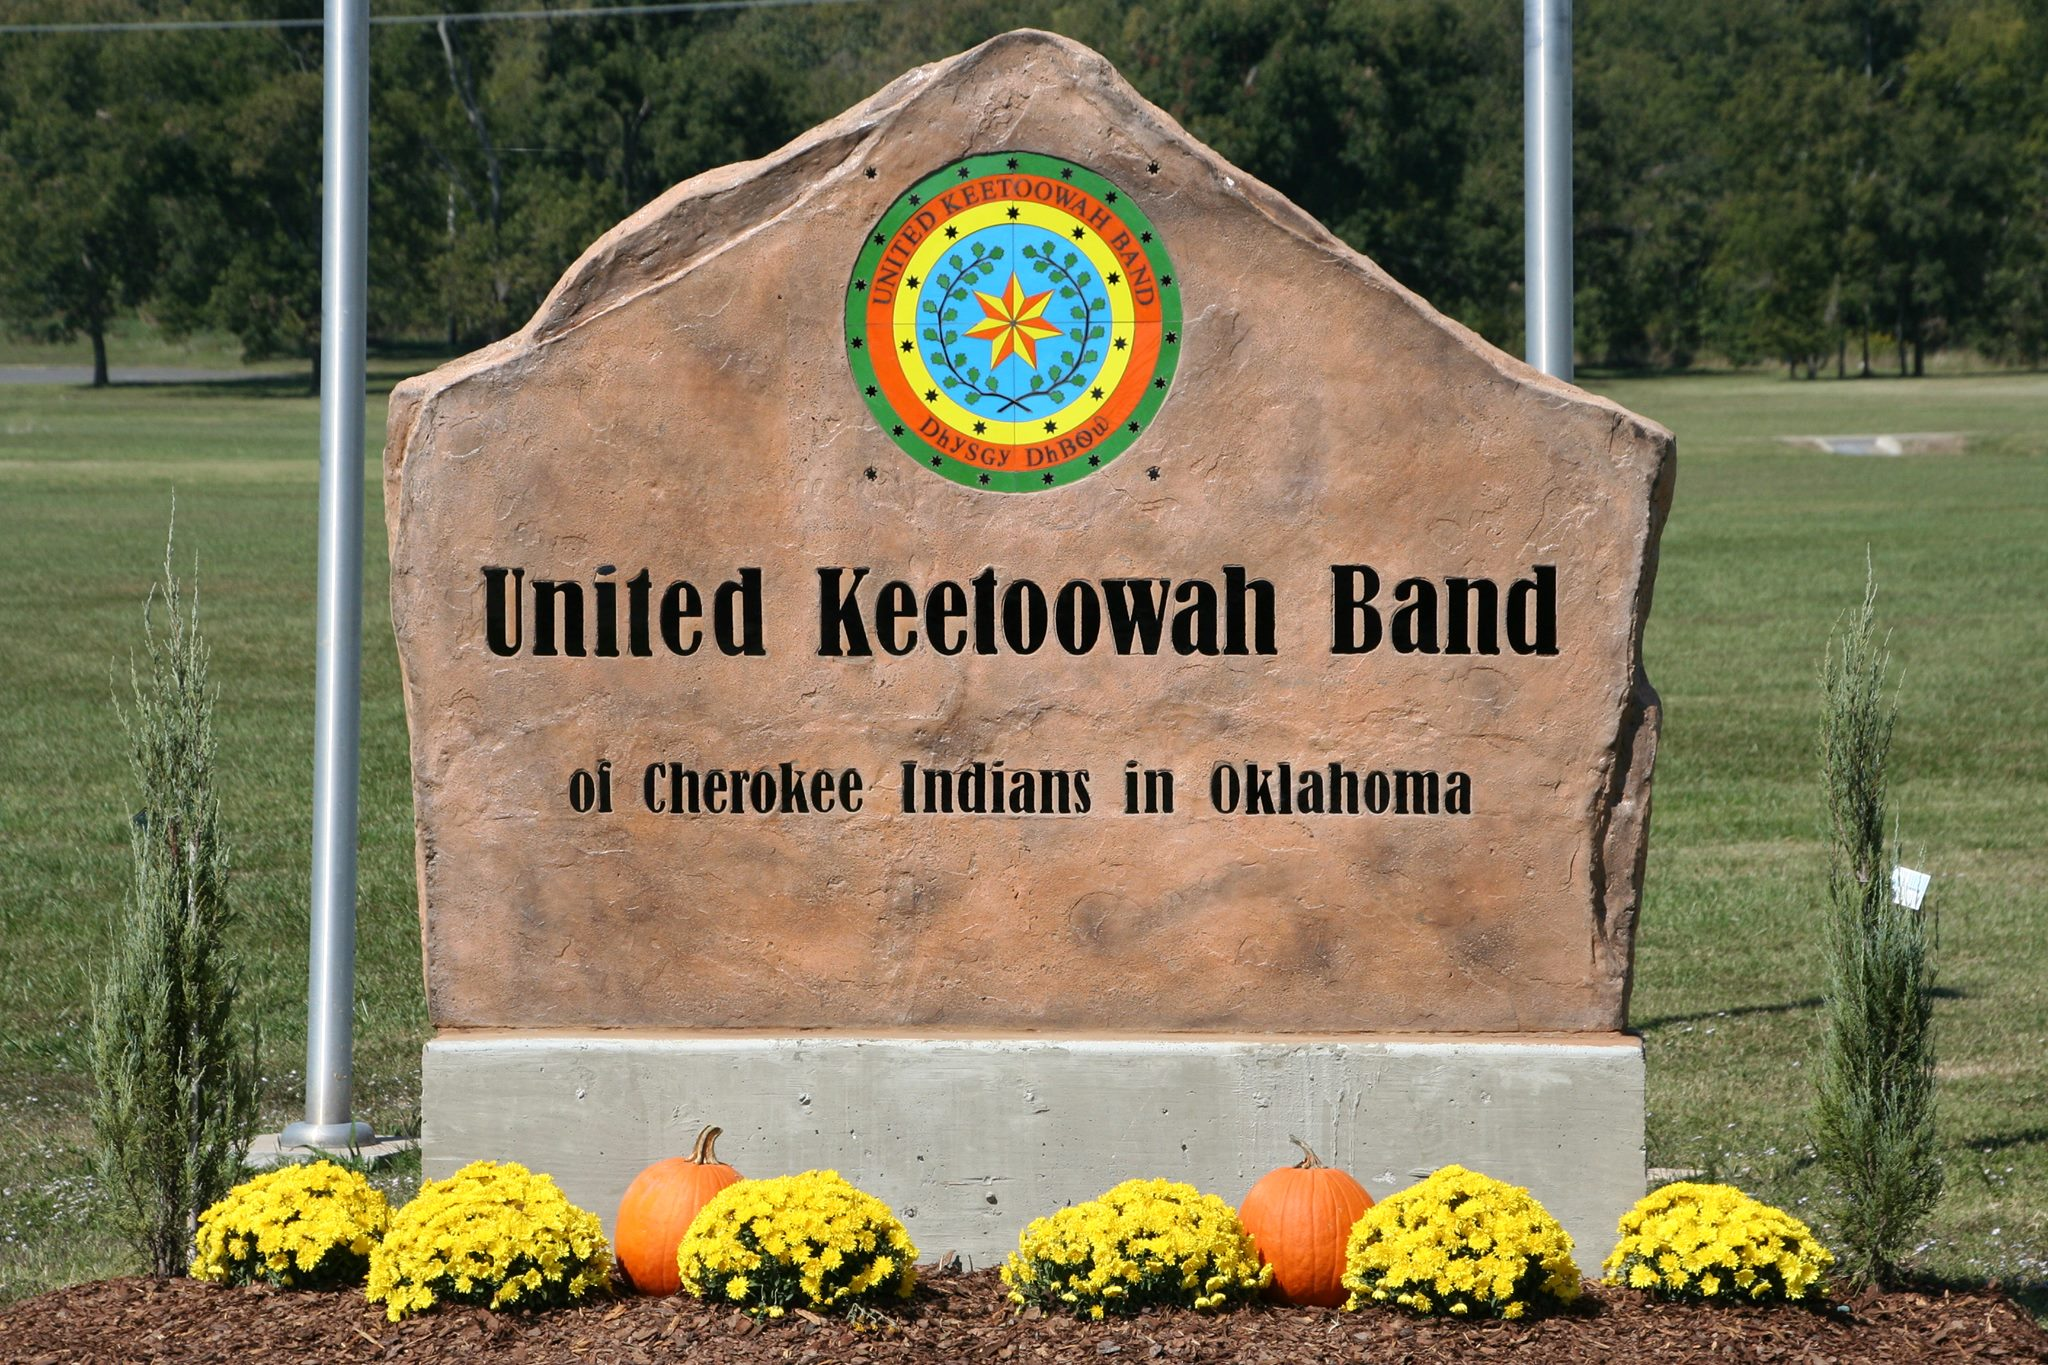 United Keetoowah Band eyes casino amid questions about land